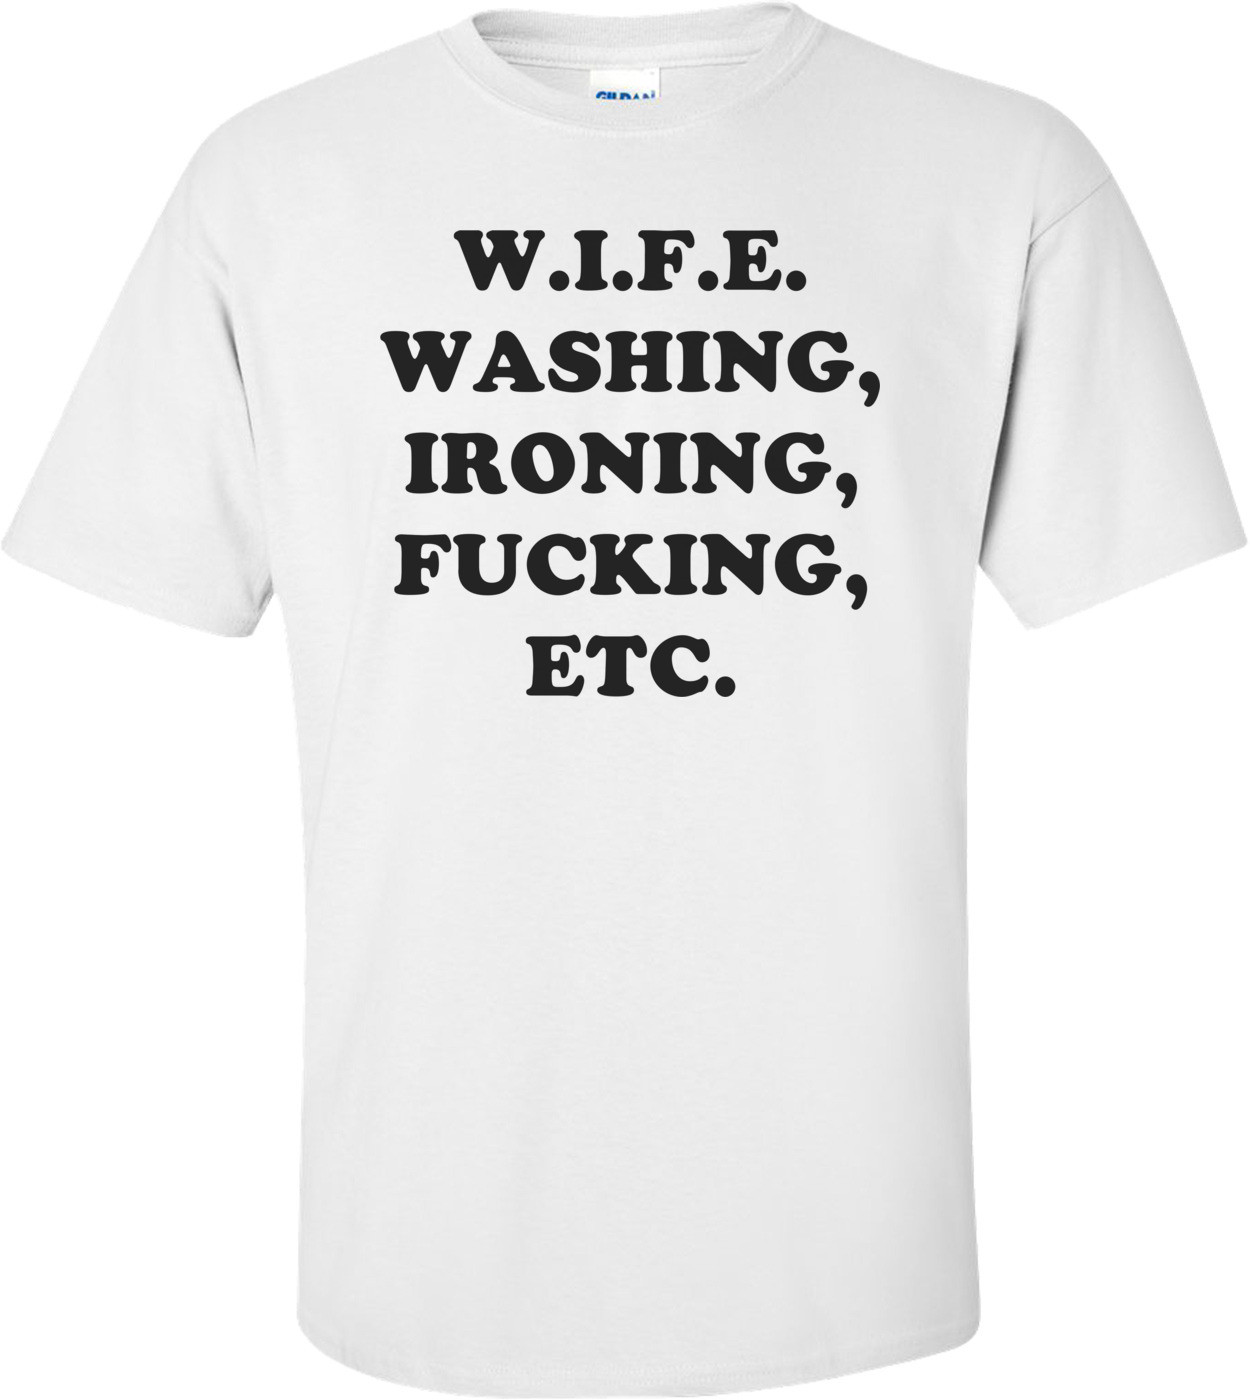 W.I.F.E. Washing, Ironing, Fucking, Etc. Shirt